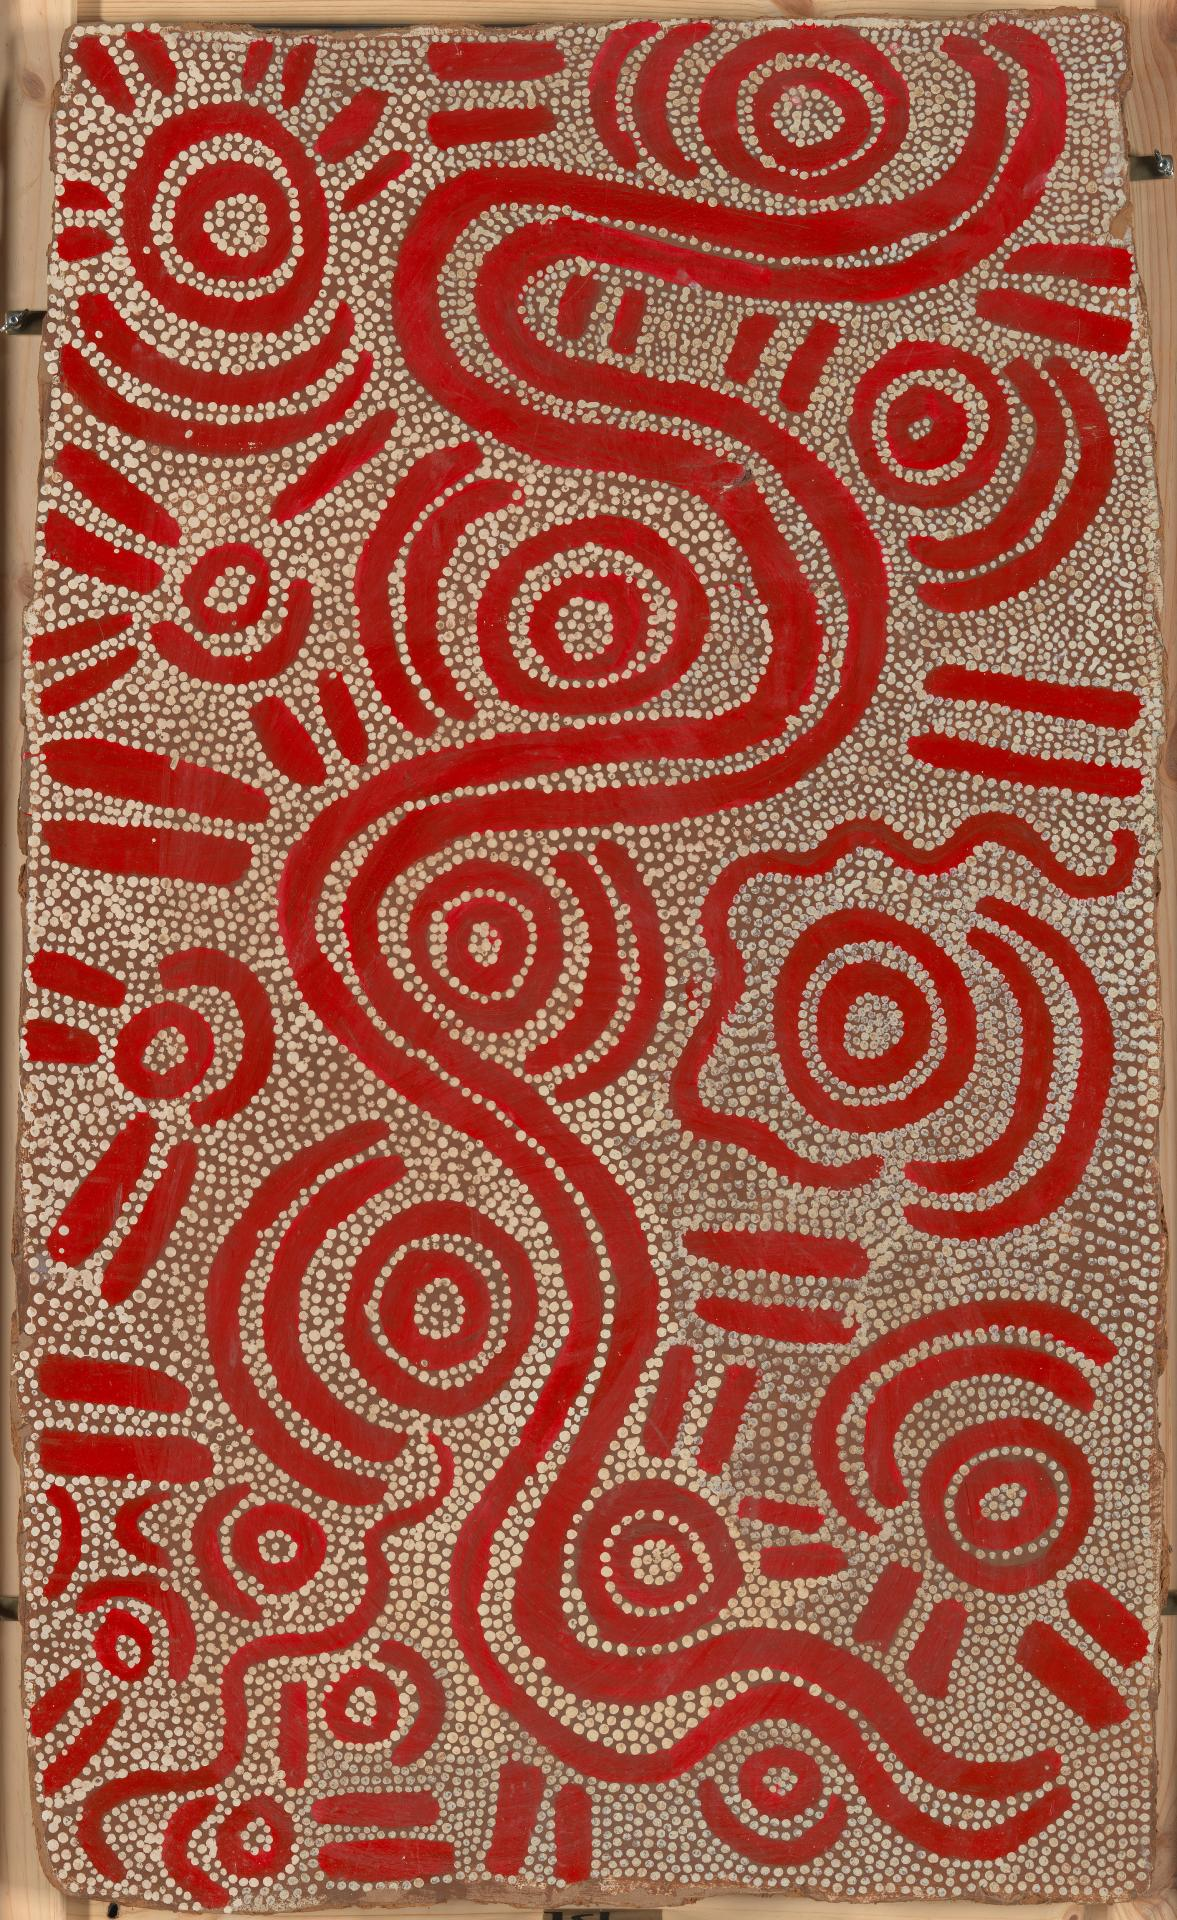 Ngapa Jukurrpa at Mikaniji (Water Dreaming at Mikaniji)